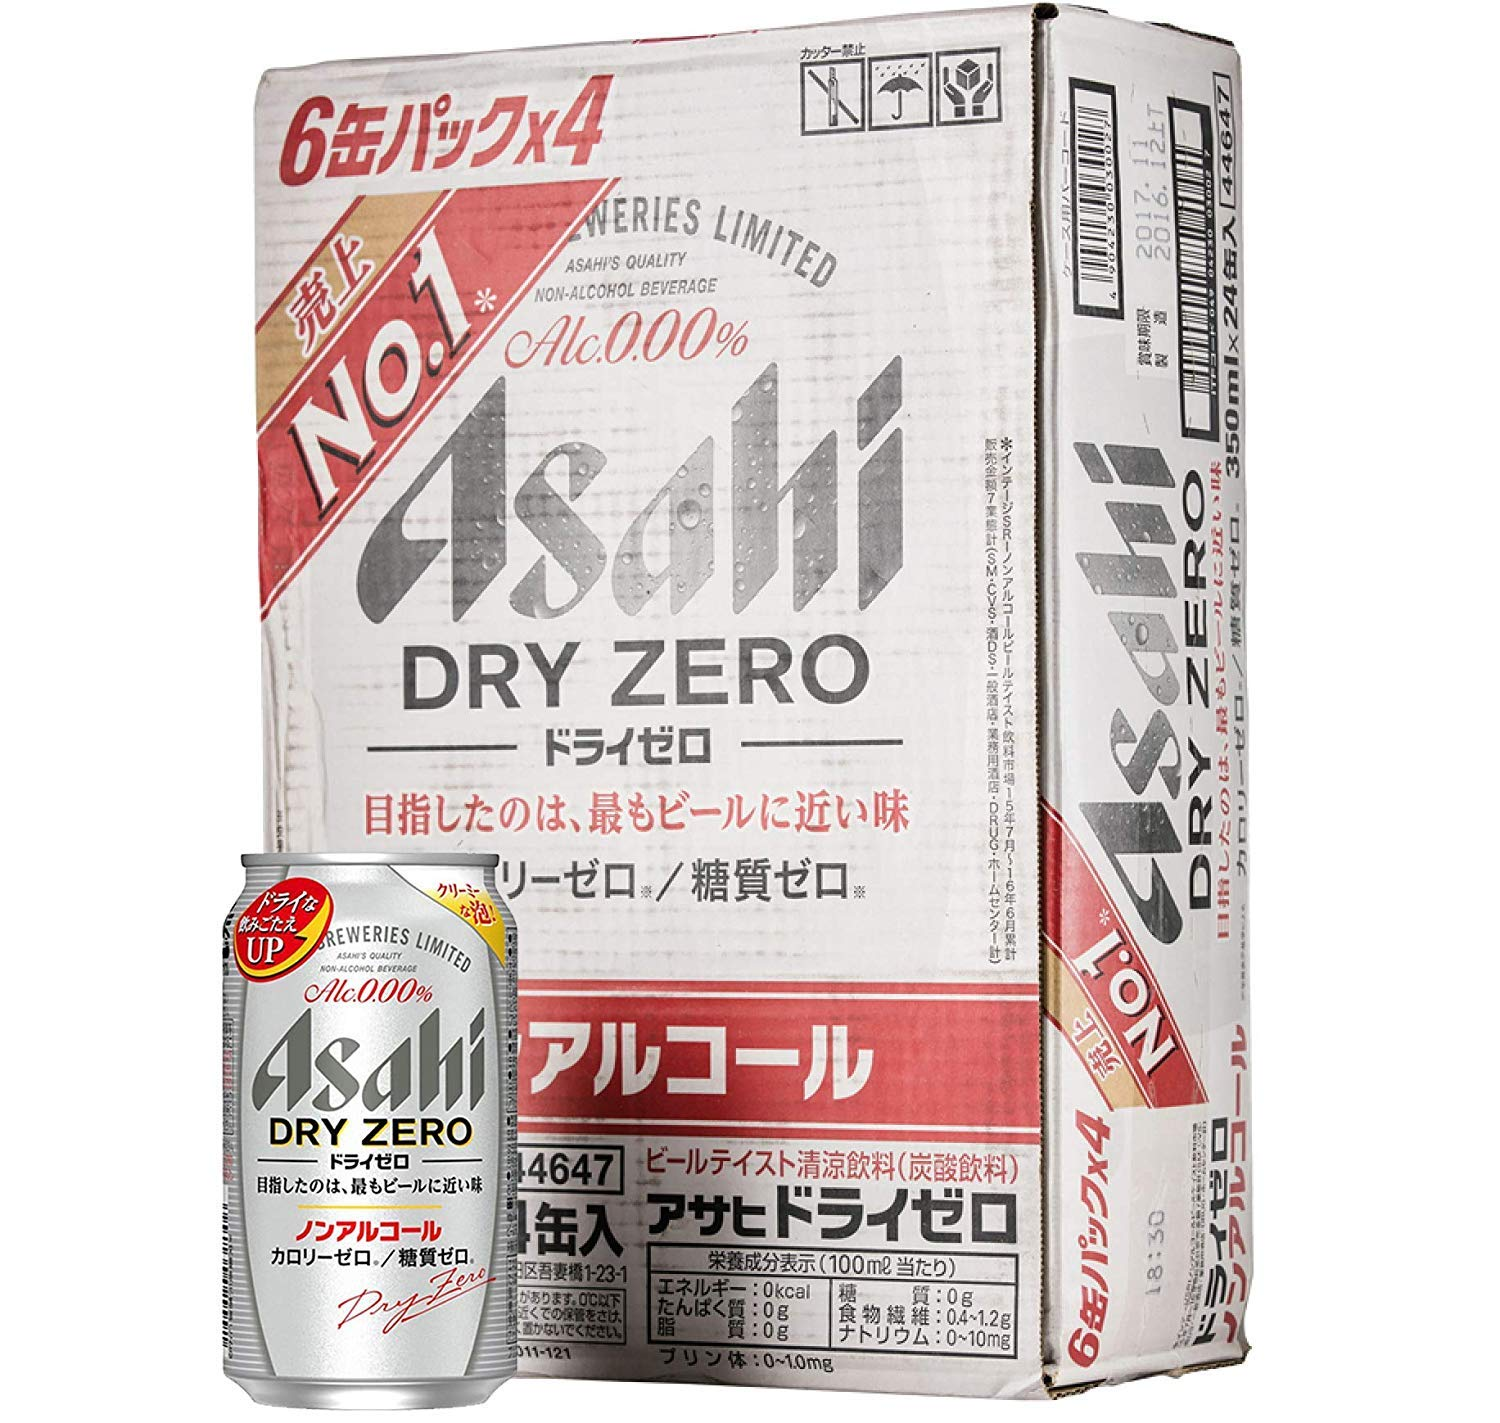 [Product of Japan] ASAHI DRY ZERO, Premium Japanese Beer Beverage, 0.00% Non-Alcohol, Zero Calories And Gluten Free, Japan No. 1 Best Selling NA Beer - 11.83 Fl Oz | Case of 24